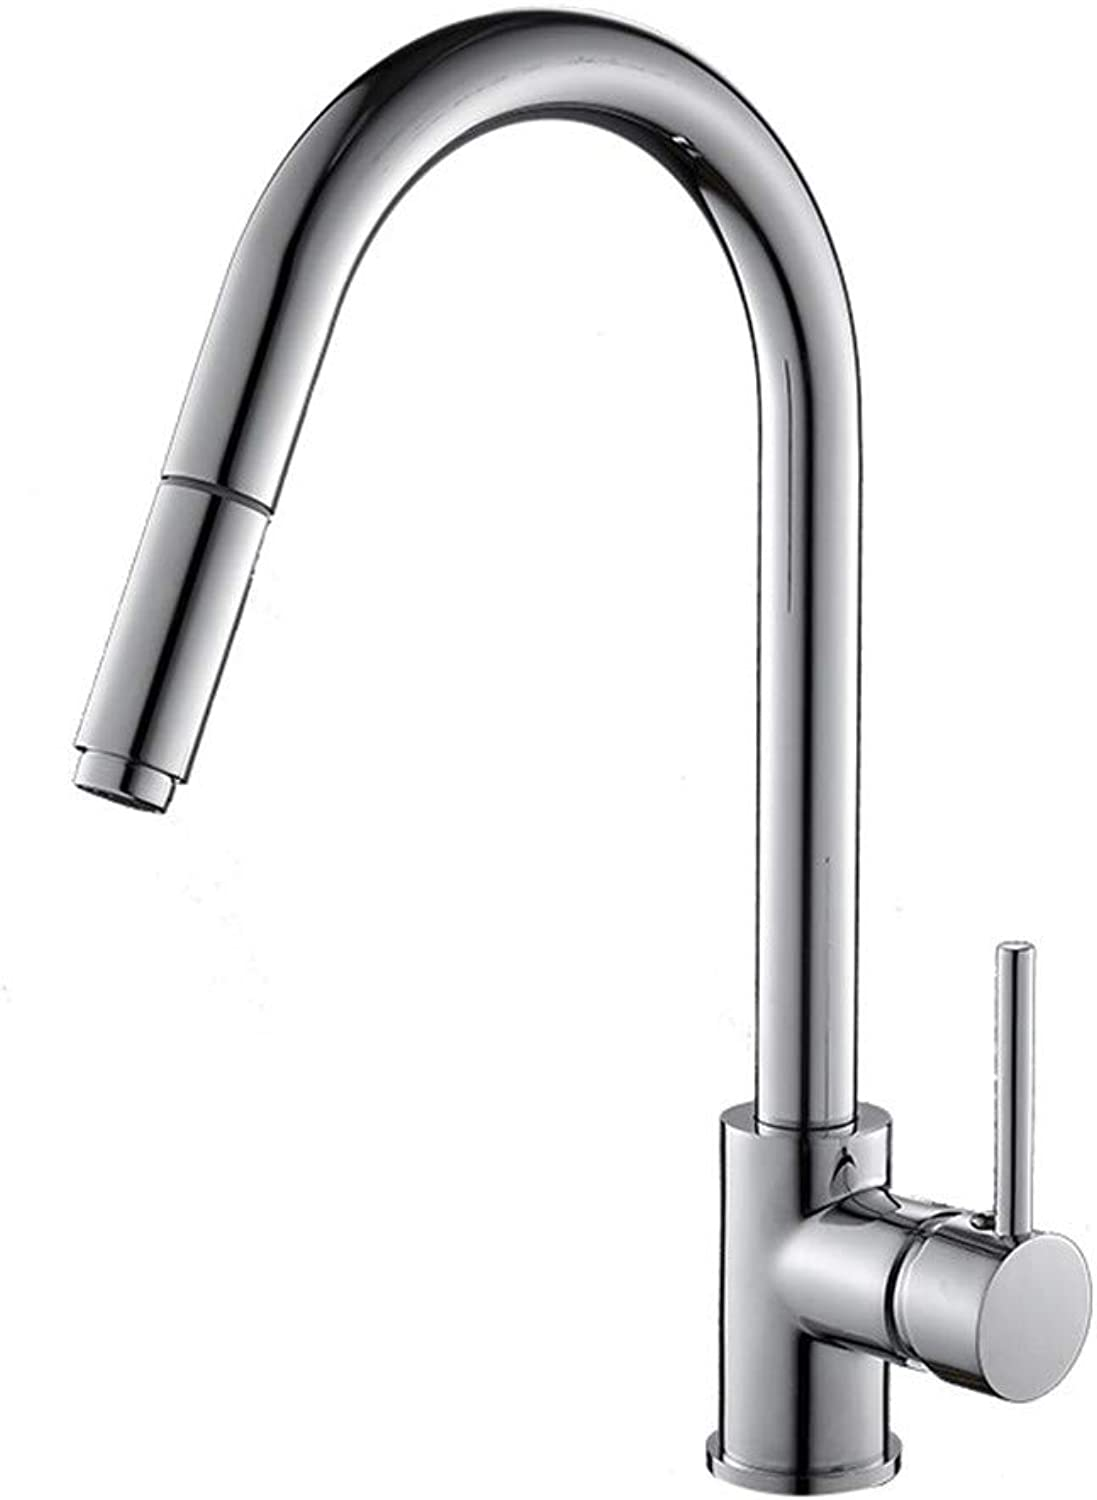 Sink Tap European Style Pull redating Kitchen Sink Sink Hot and Cold Faucet